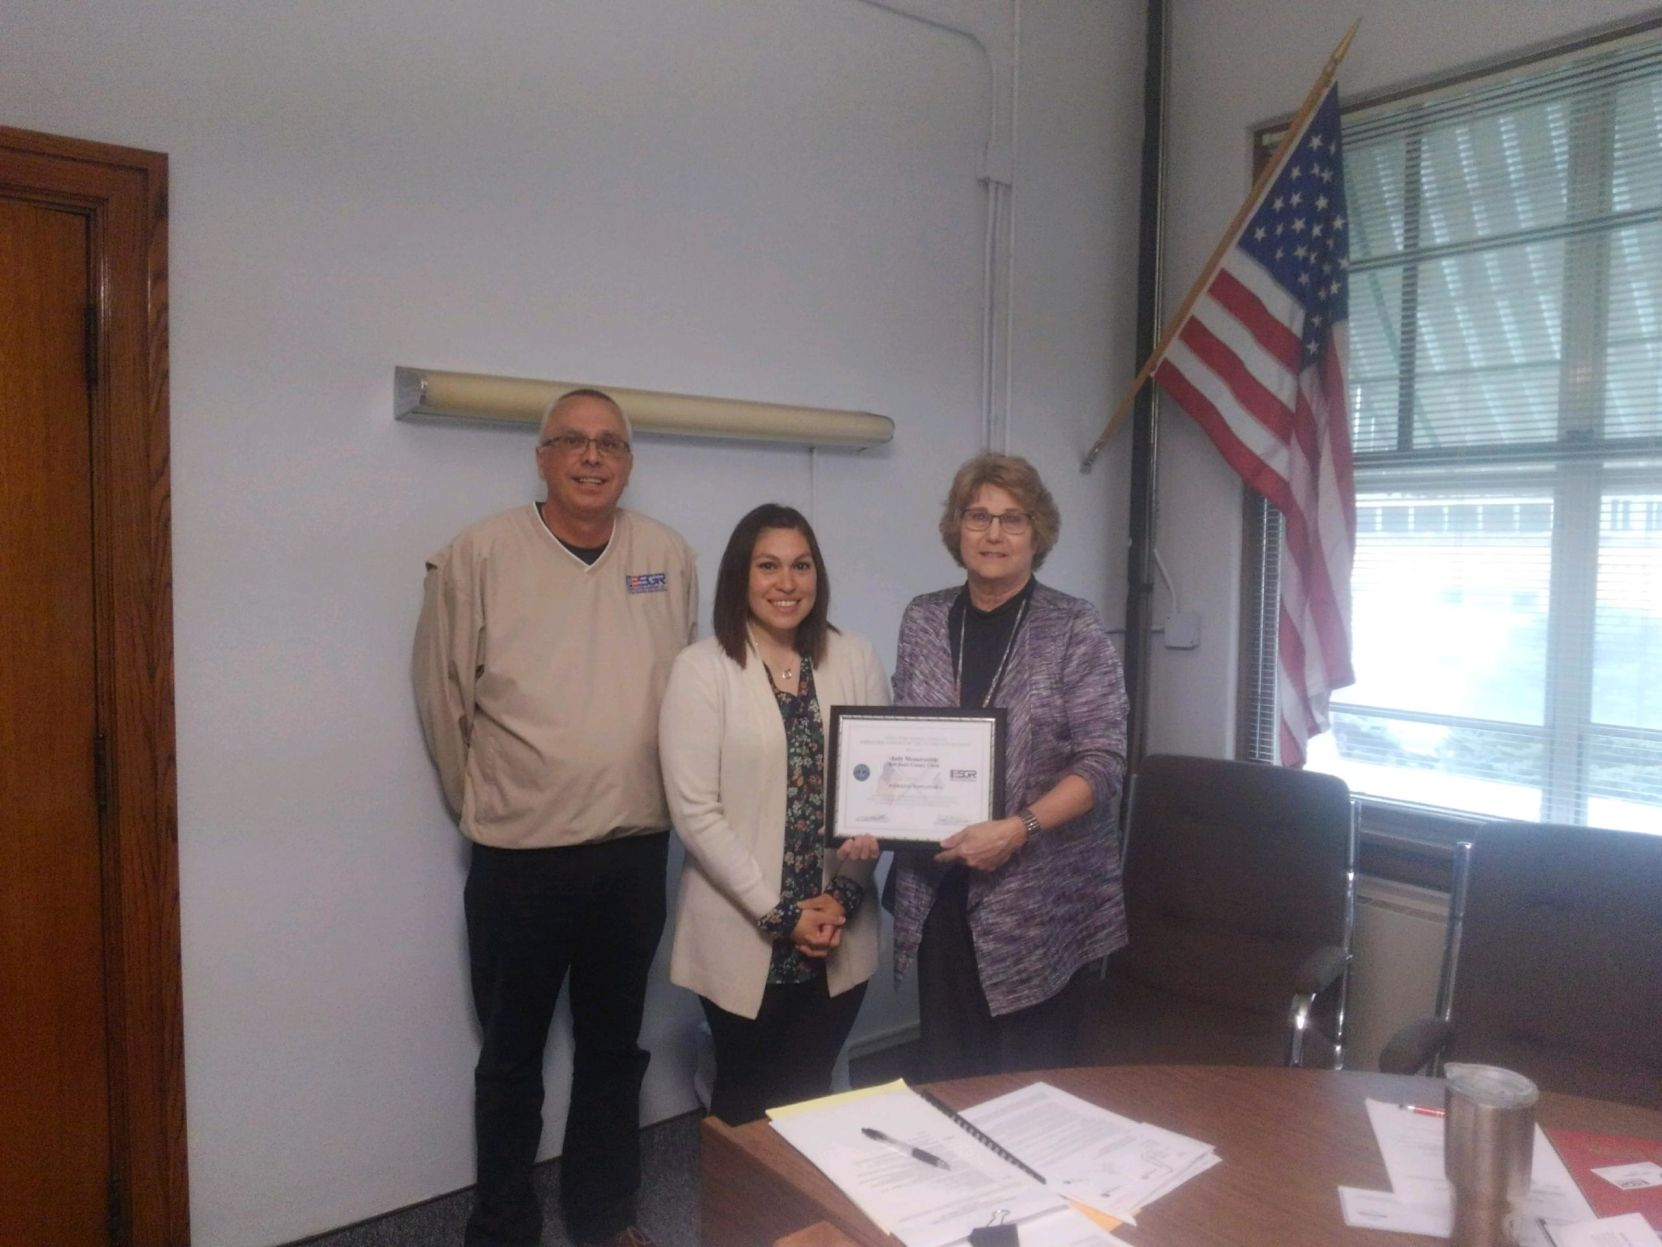 County Clerk Recognized by Department of Defense for Patriotic Support